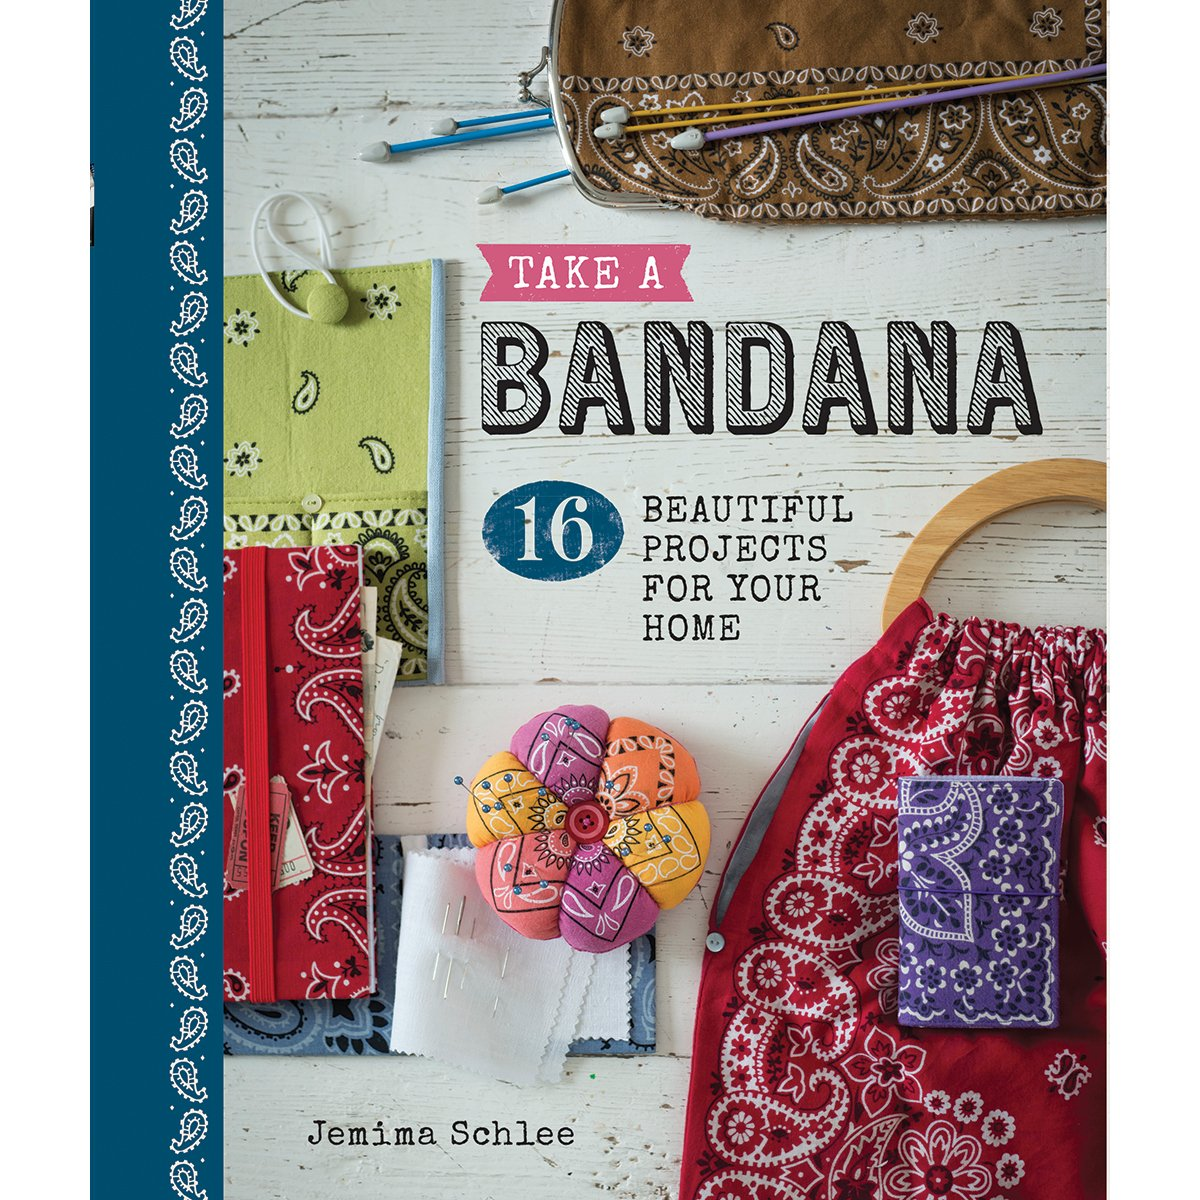 Download Take a Bandana: 16 Beautiful Projects for Your Home PDF